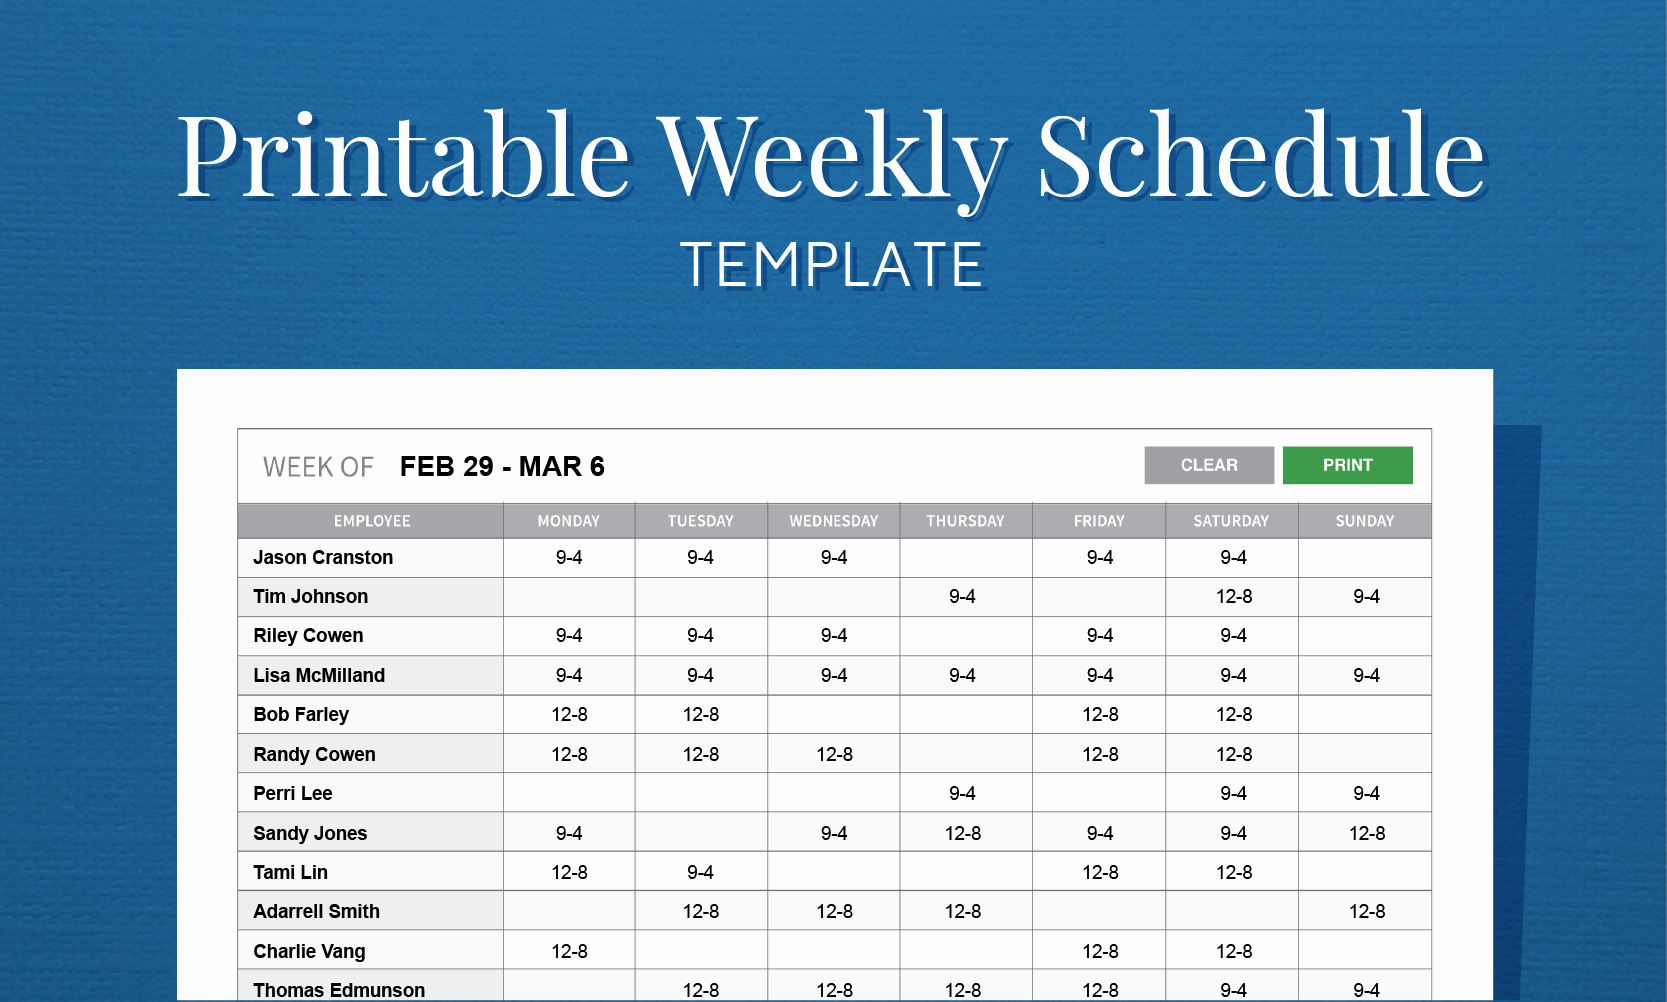 Free Restaurant Schedule Template Inspirational Free Printable Weekly Work Schedule Template for Employee